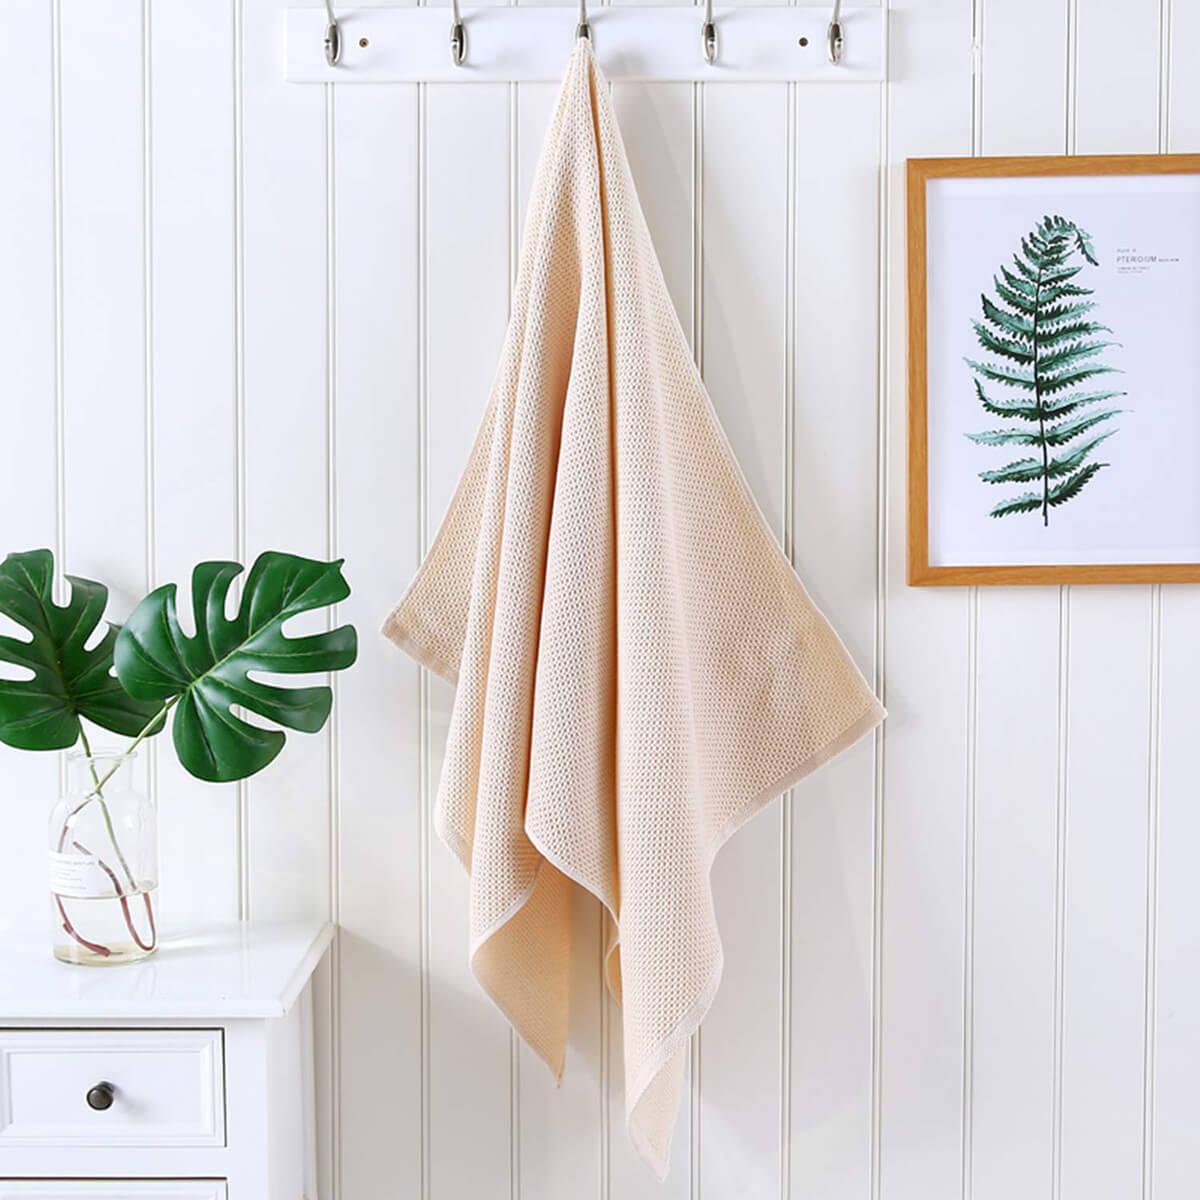 Lightweight Knit Bath Towel Set by CC CAIHONG